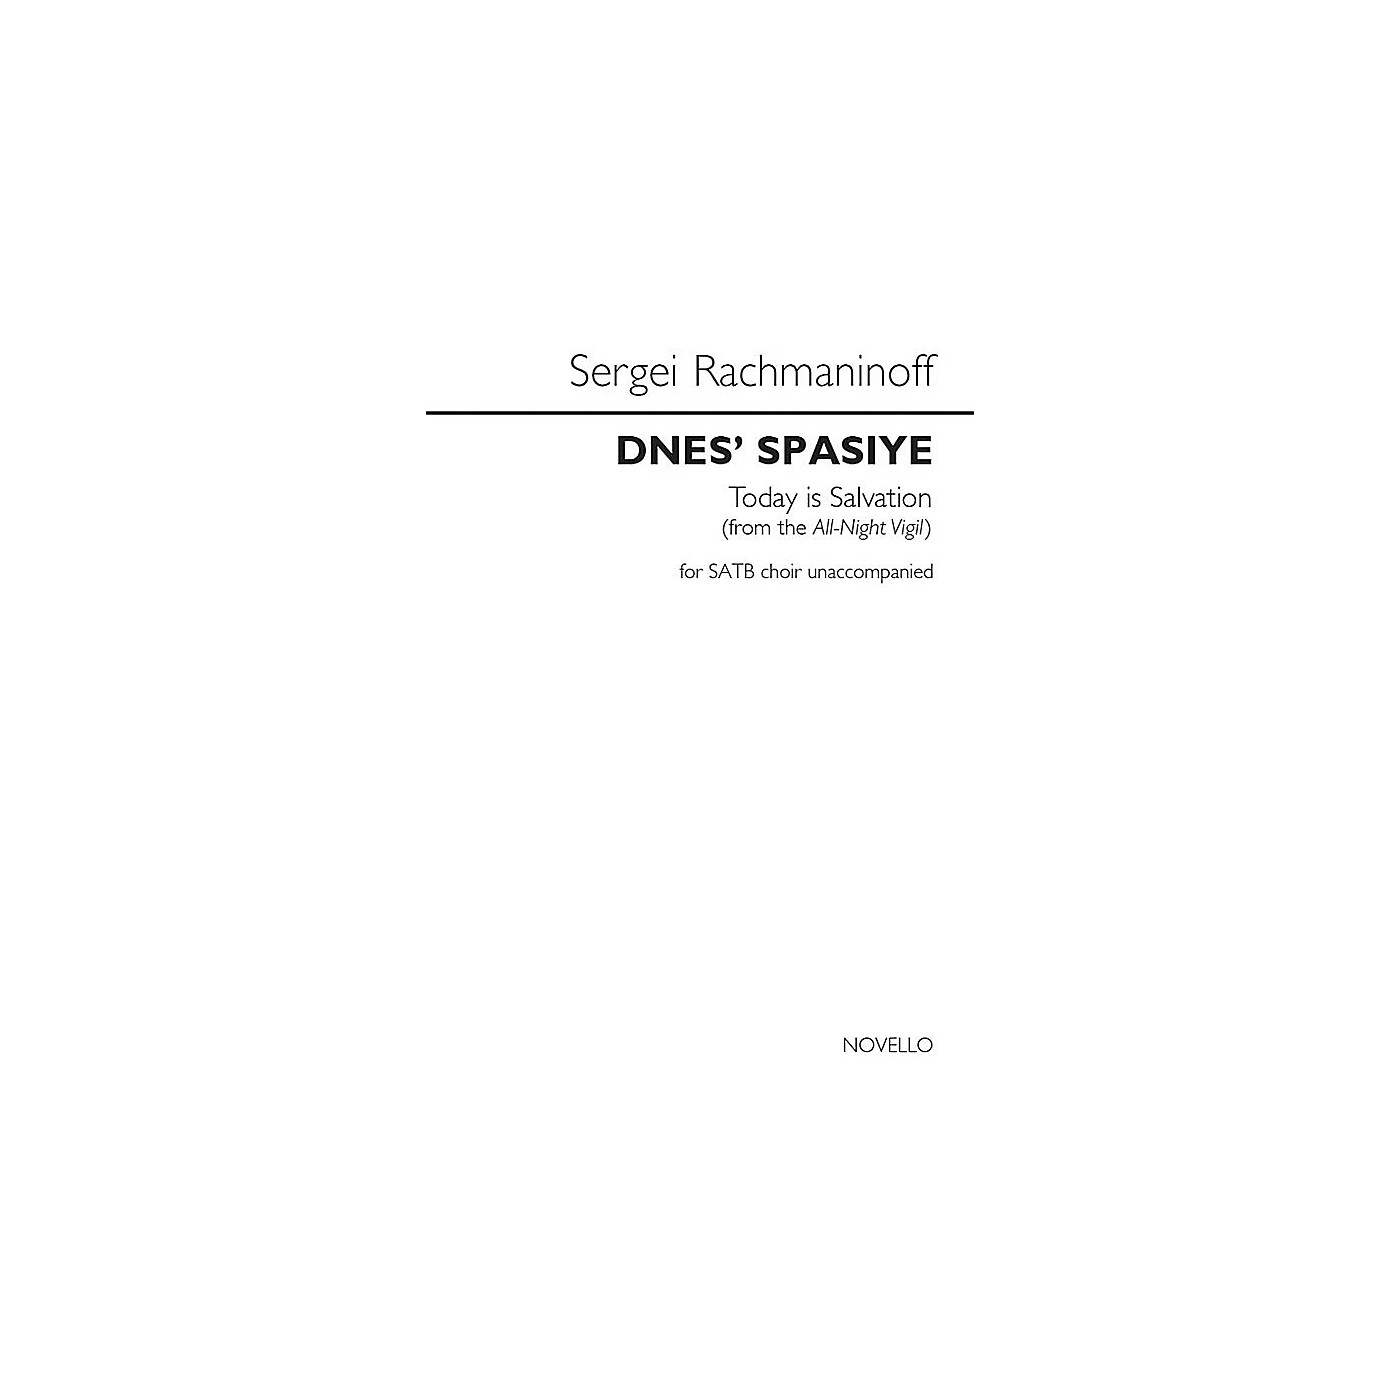 Novello Dnes' Spasiye (Today Is Salvation) (from the All-Night Vigil) SATB a cappella by Sergei Rachmaninoff thumbnail